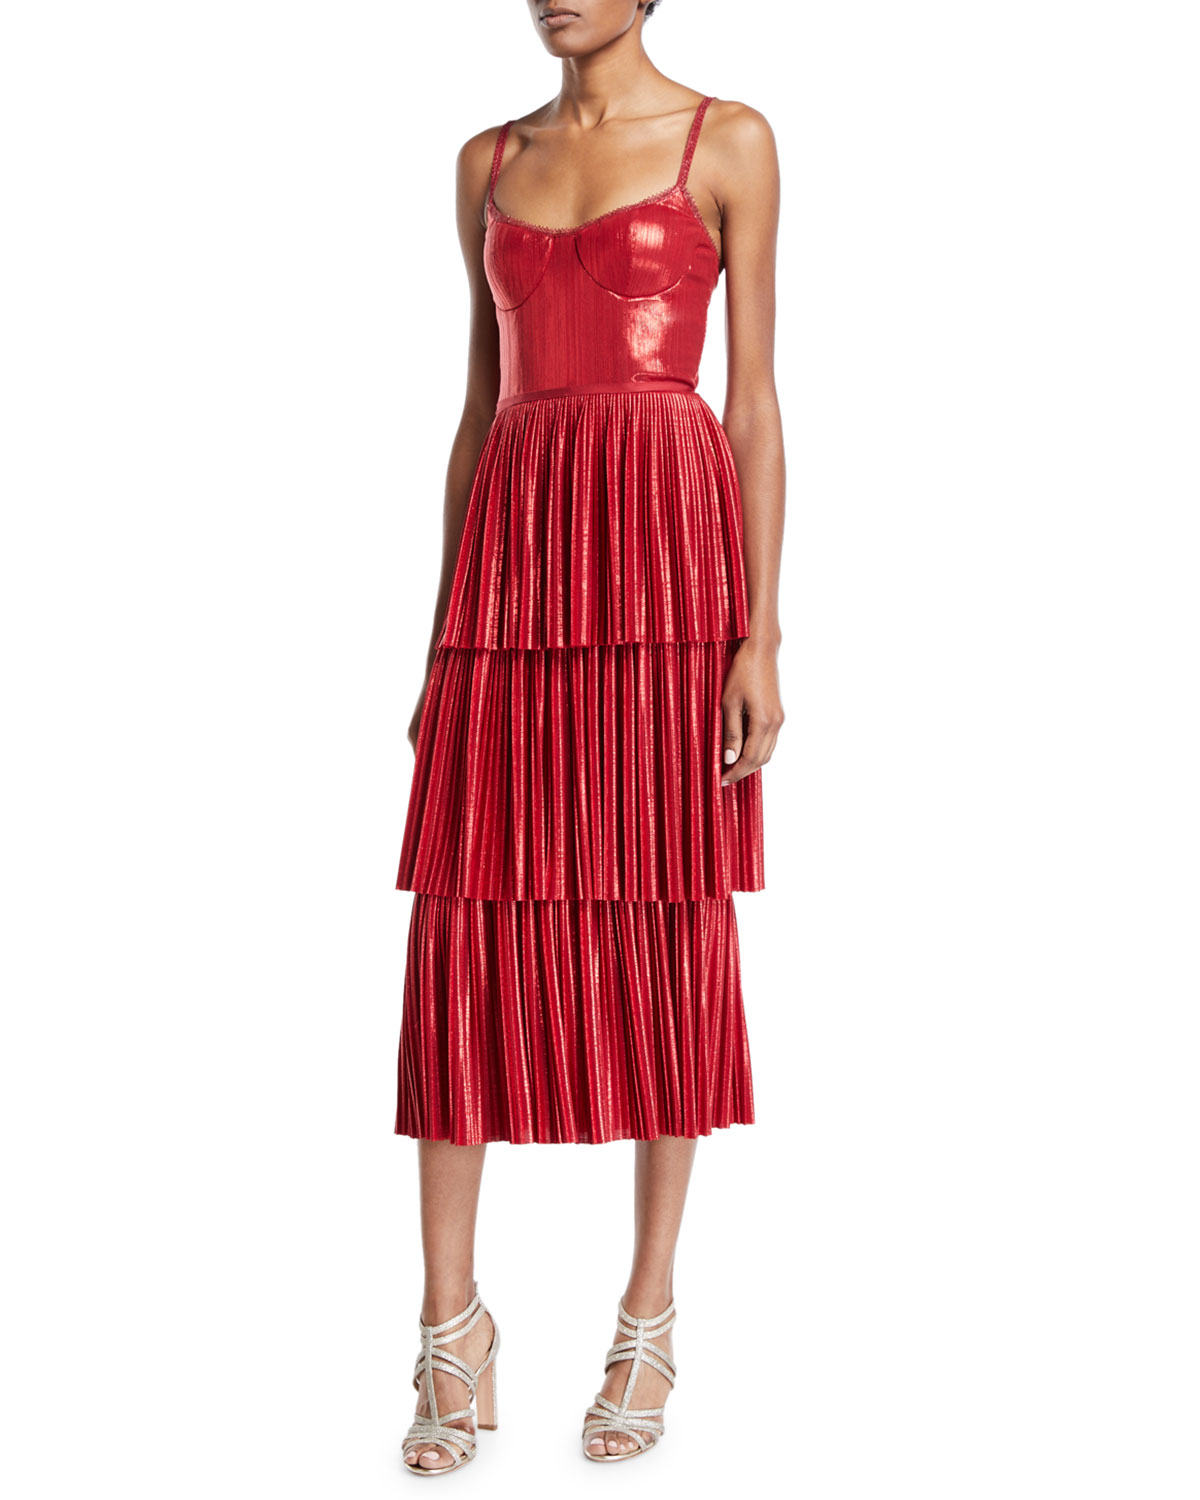 Pleated Lame Tiered Cocktail Dress W/ Metallic Trims in Red